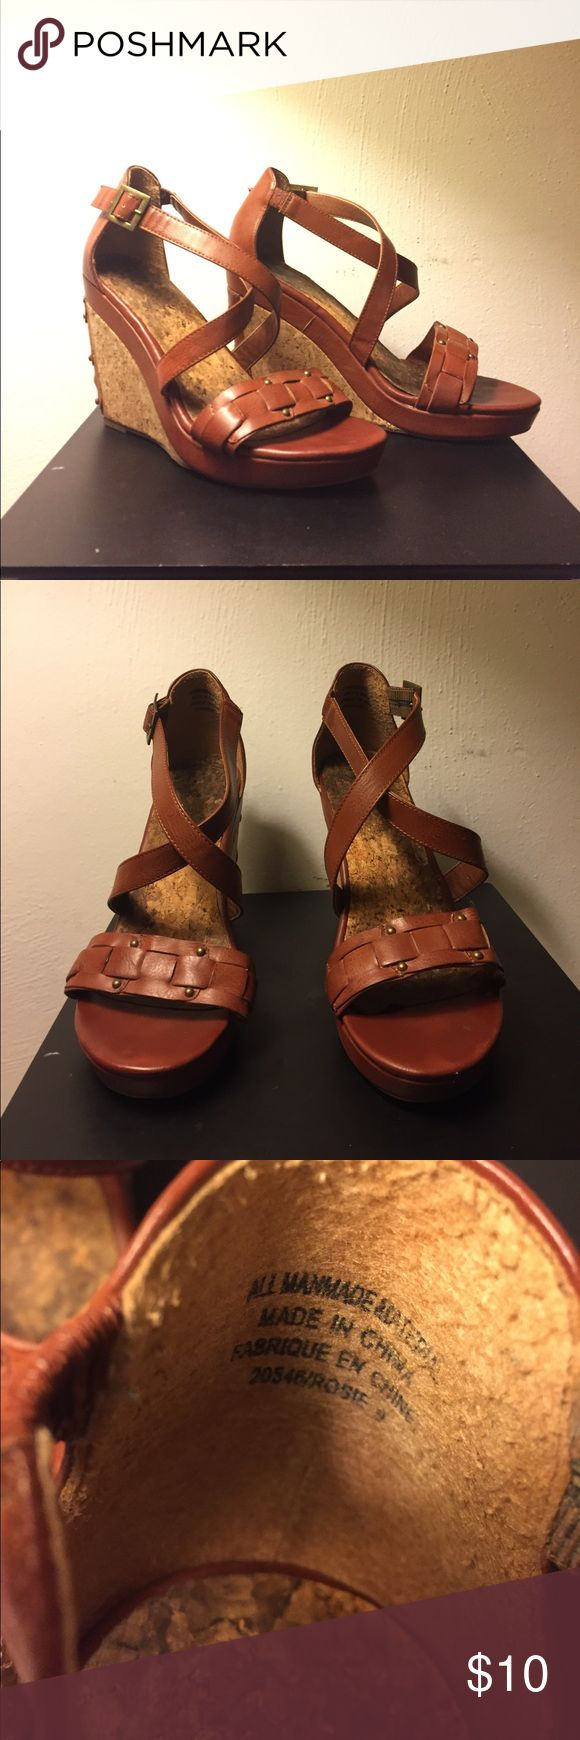 Brown Cork Wedges Worn twice for graduations.  In very good condition   No offers. I'm listing these as low as I can go. Maurices Shoes Wedges